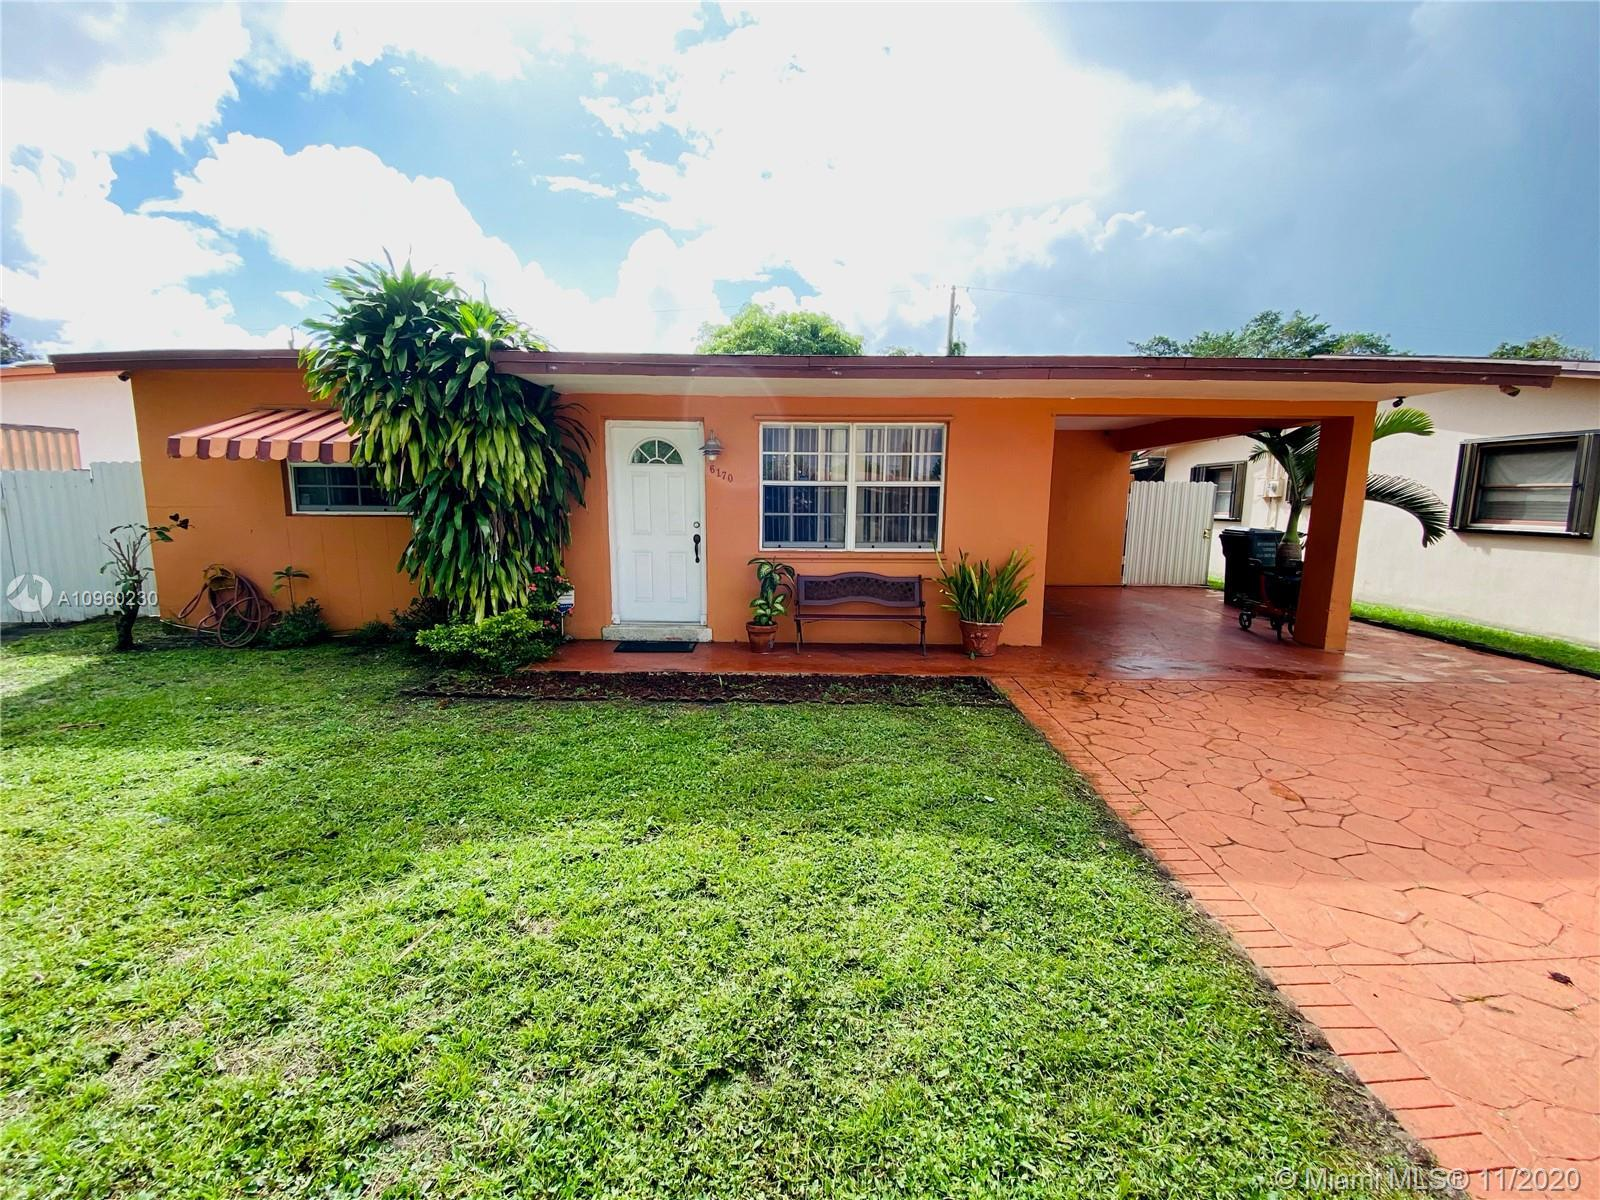 This beautiful 3/2 home home features stainless steel appliances, granite countertops, accordion shu